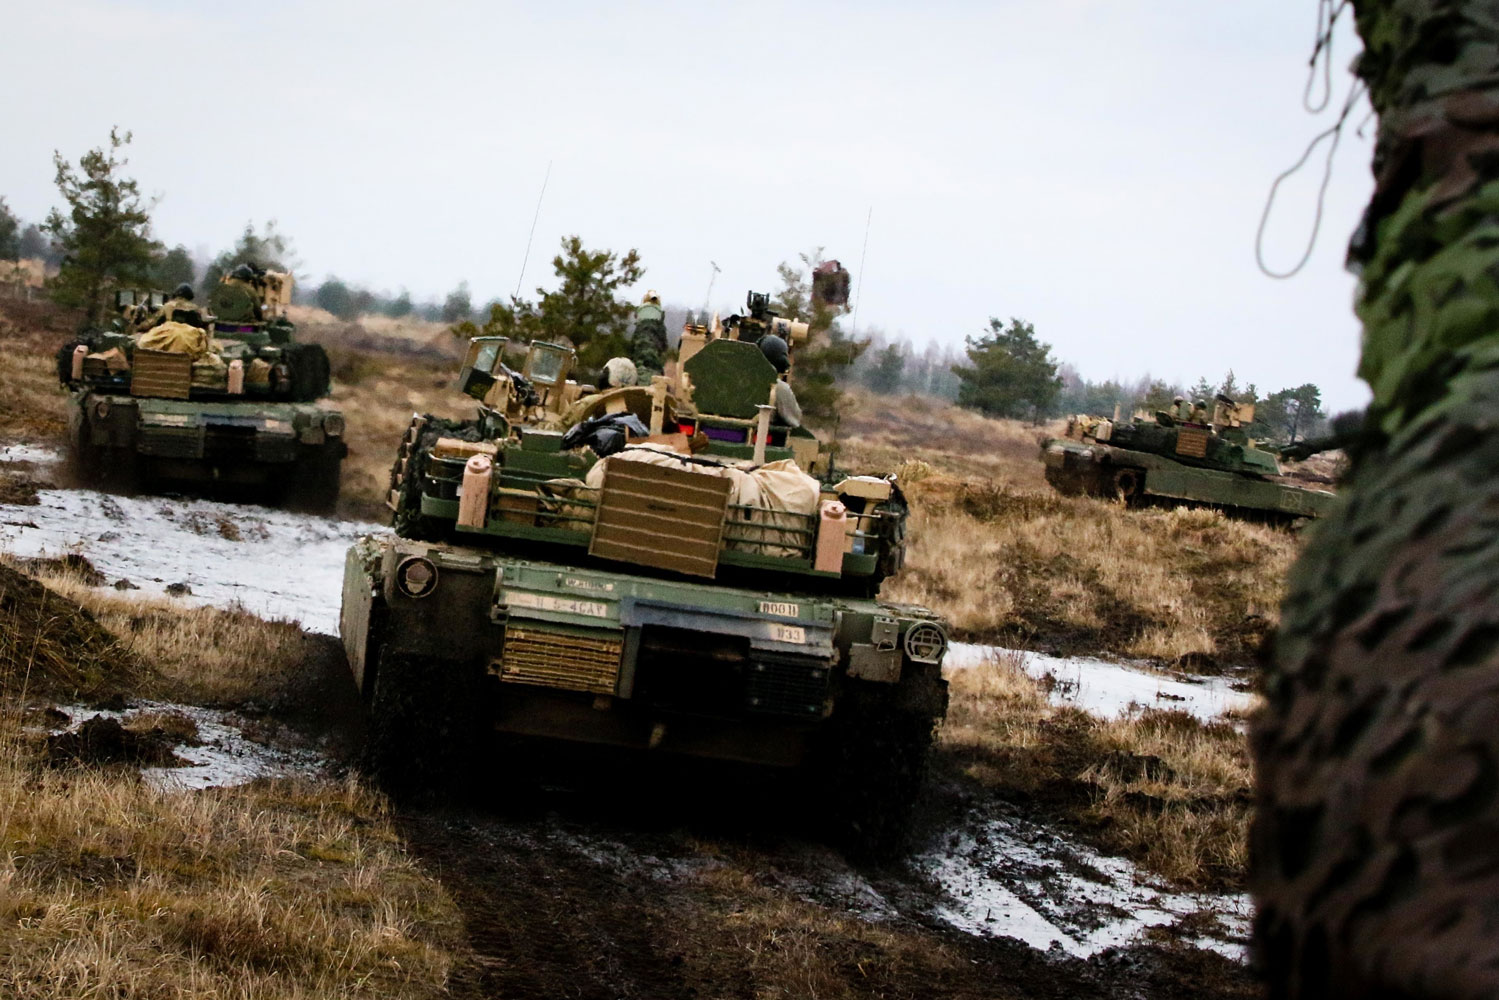 A group of M1A2 Abrams tanks move into firing positions during training.